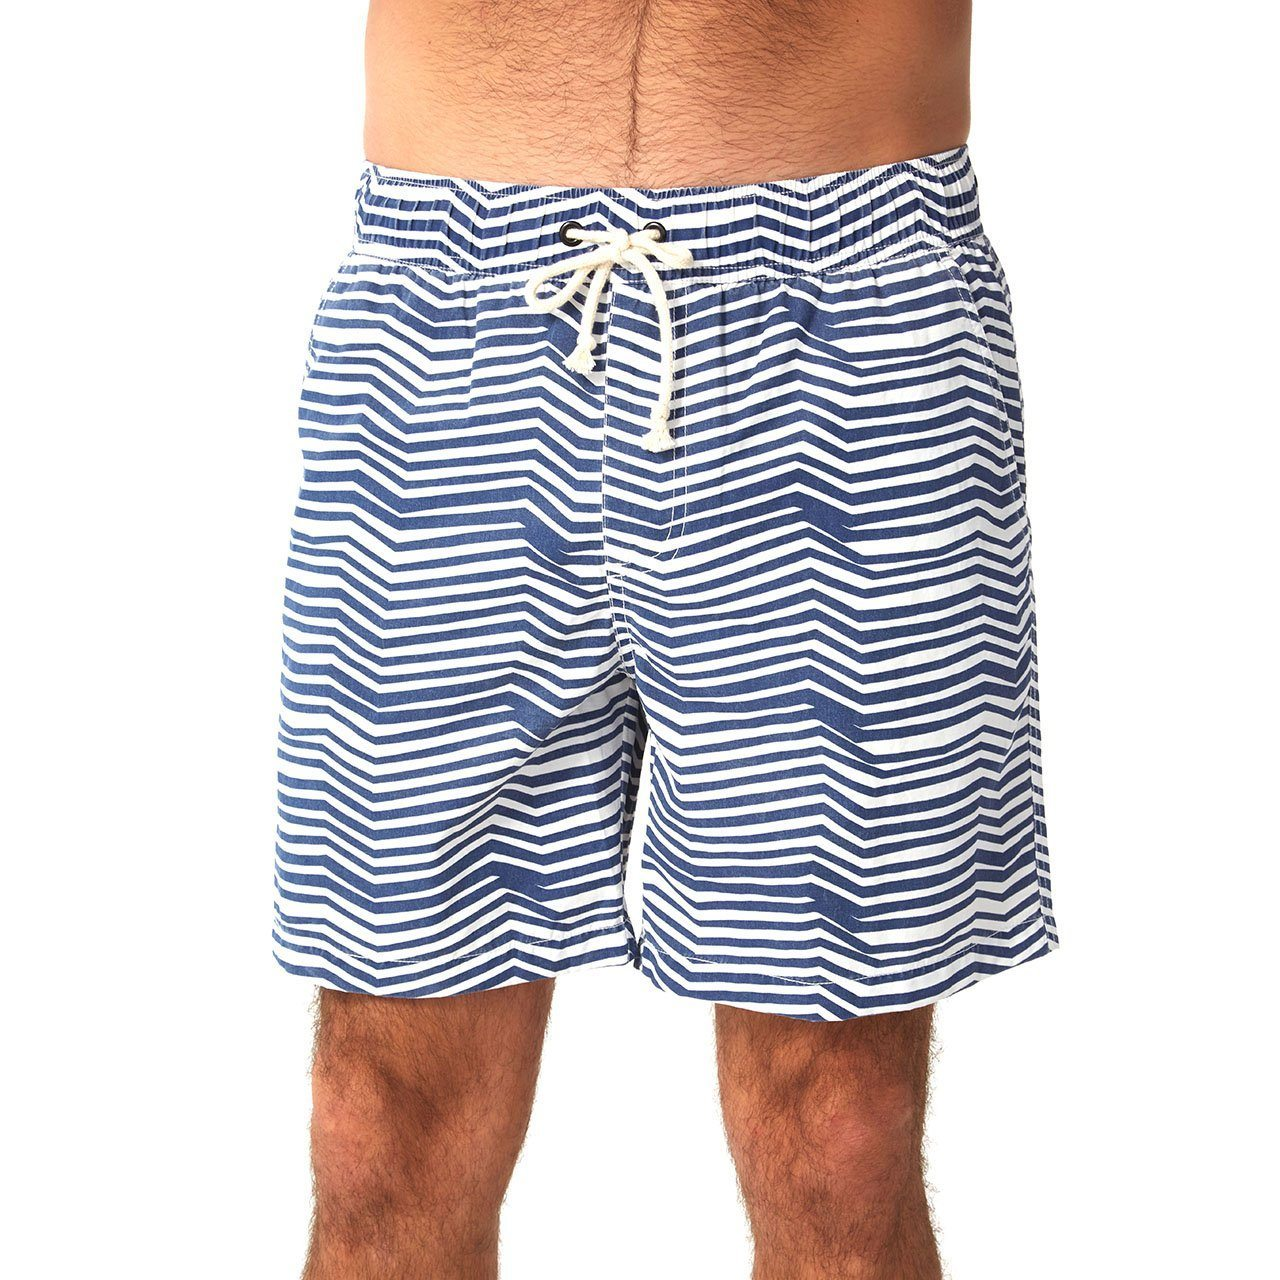 mens swim shorts blue stripes wave pattern mens clothes lord owens